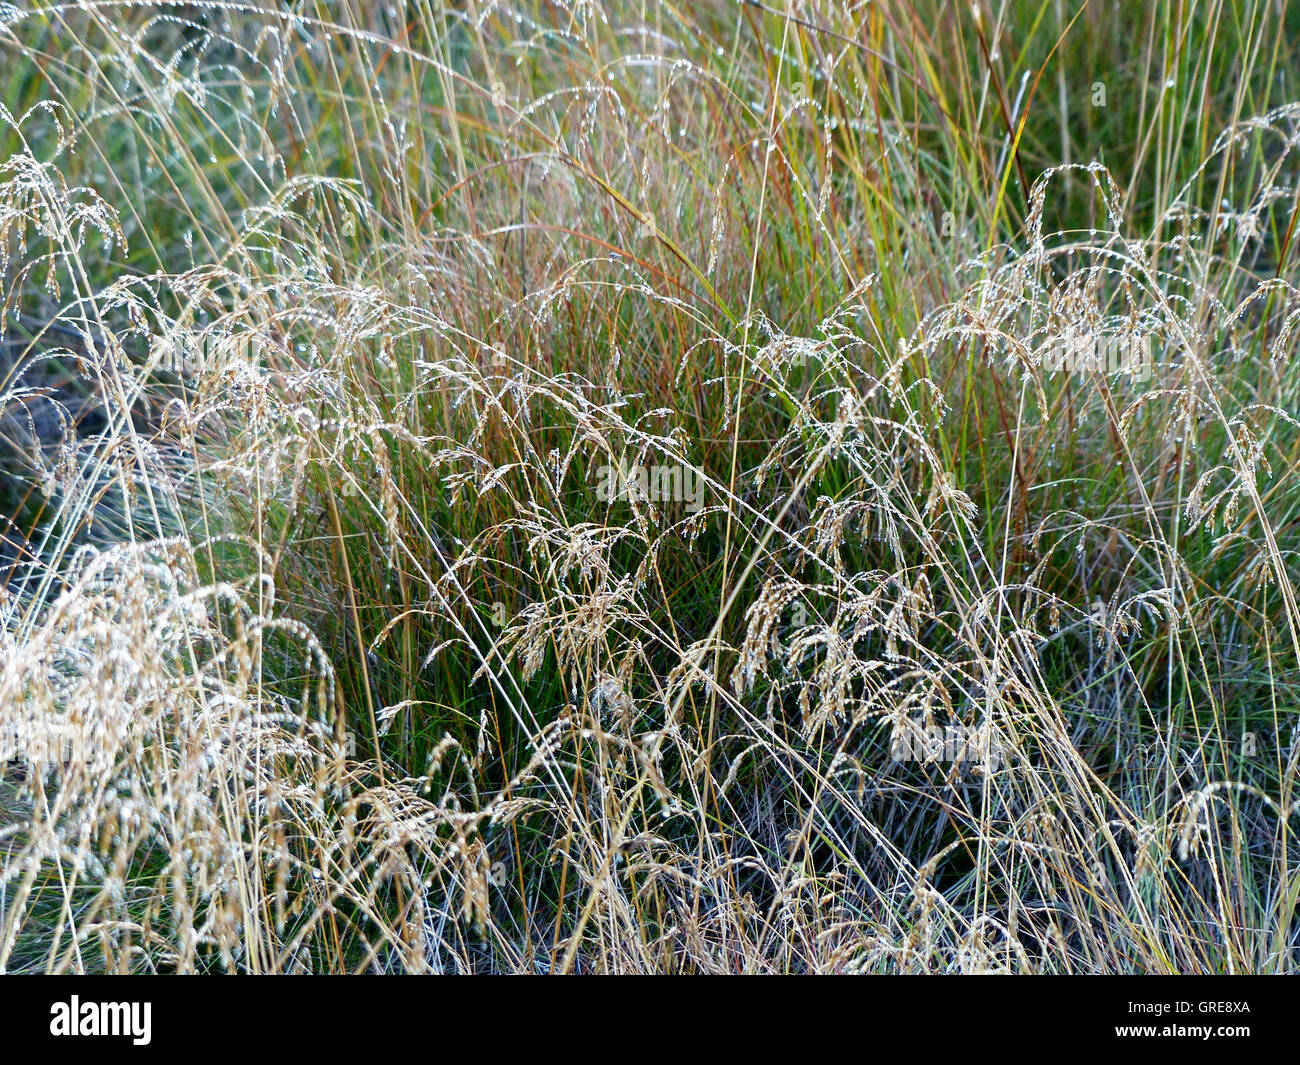 Grasses With Dewdrops - Stock Image